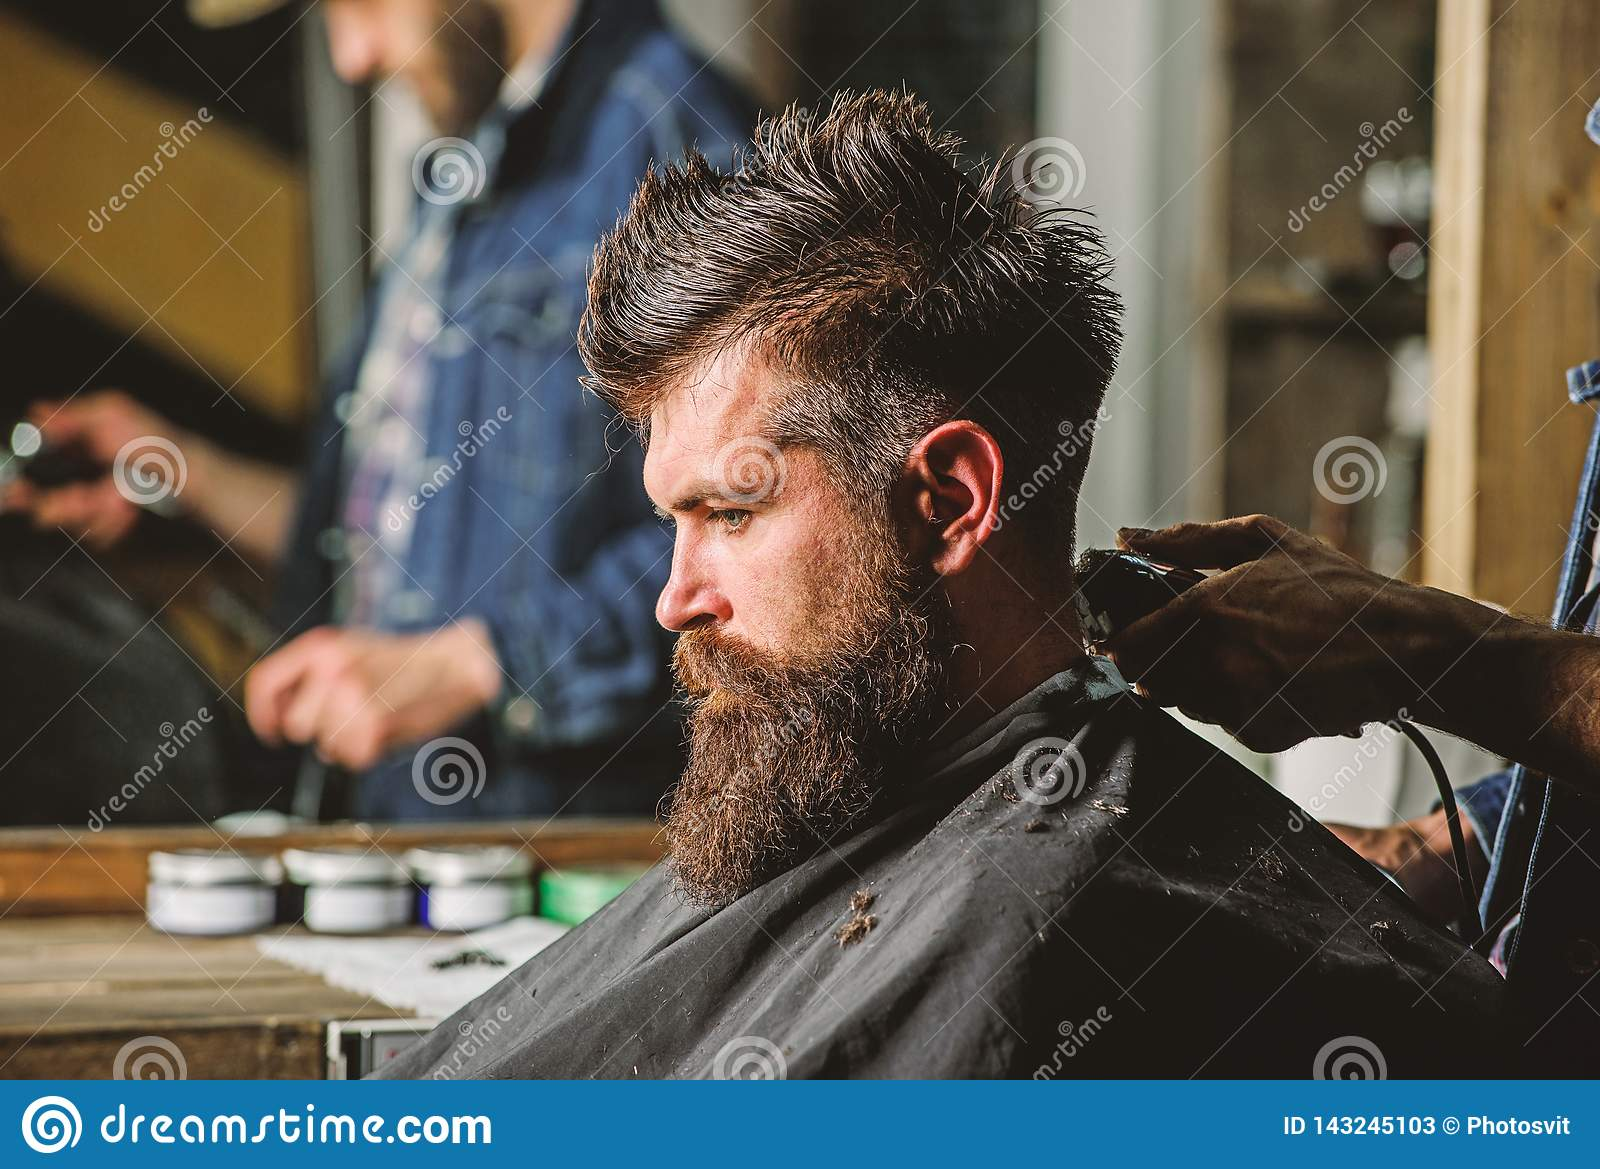 Hand of barber with hair clipper, close up. Hipster bearded client getting hairstyle. Barbershop concept. Man with beard